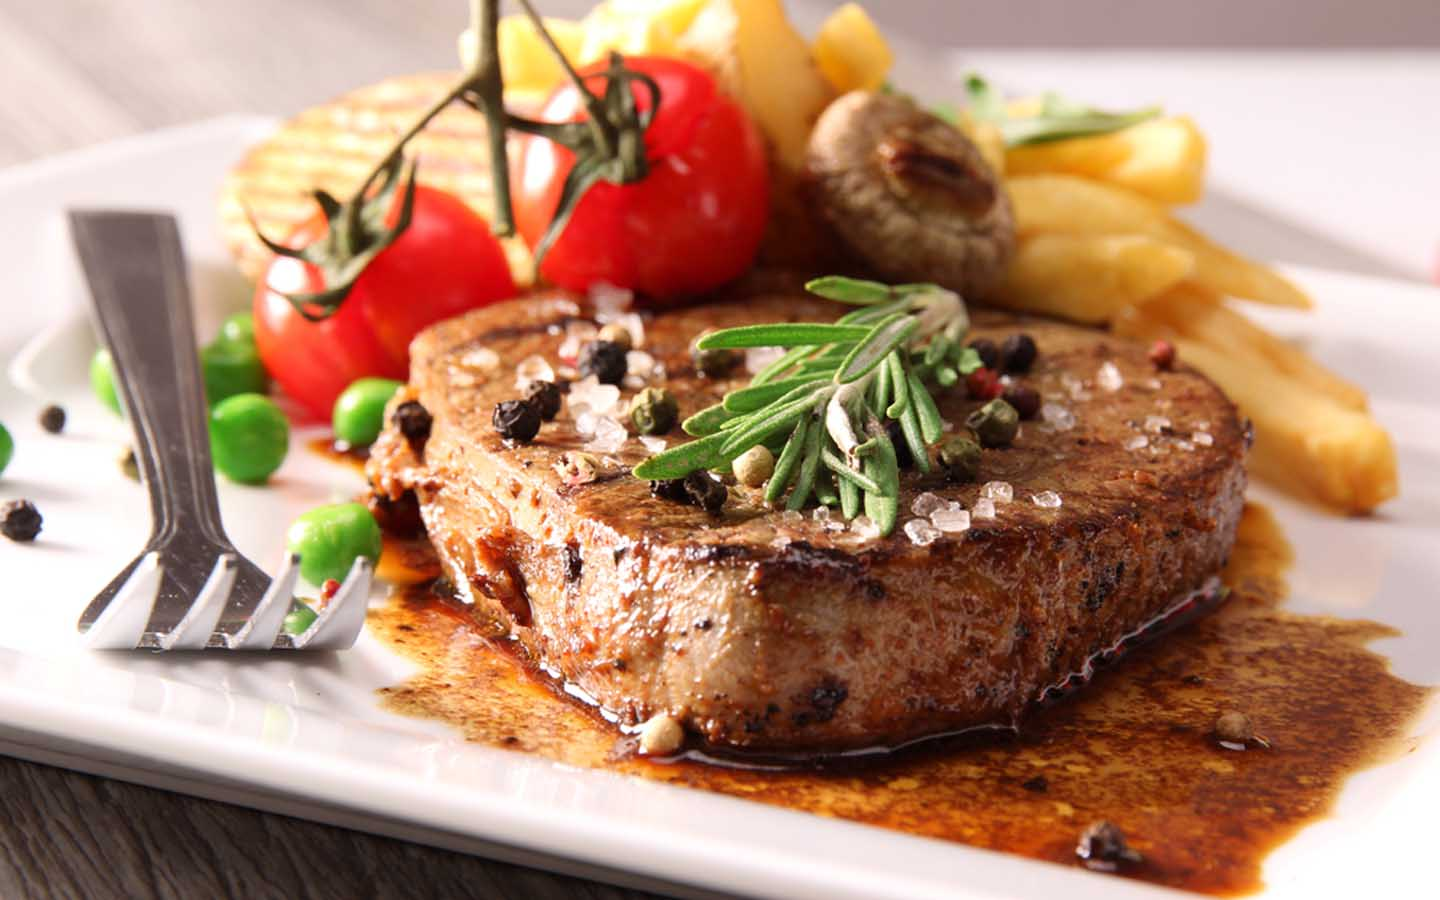 Grilled beef steak on a bed of sauce